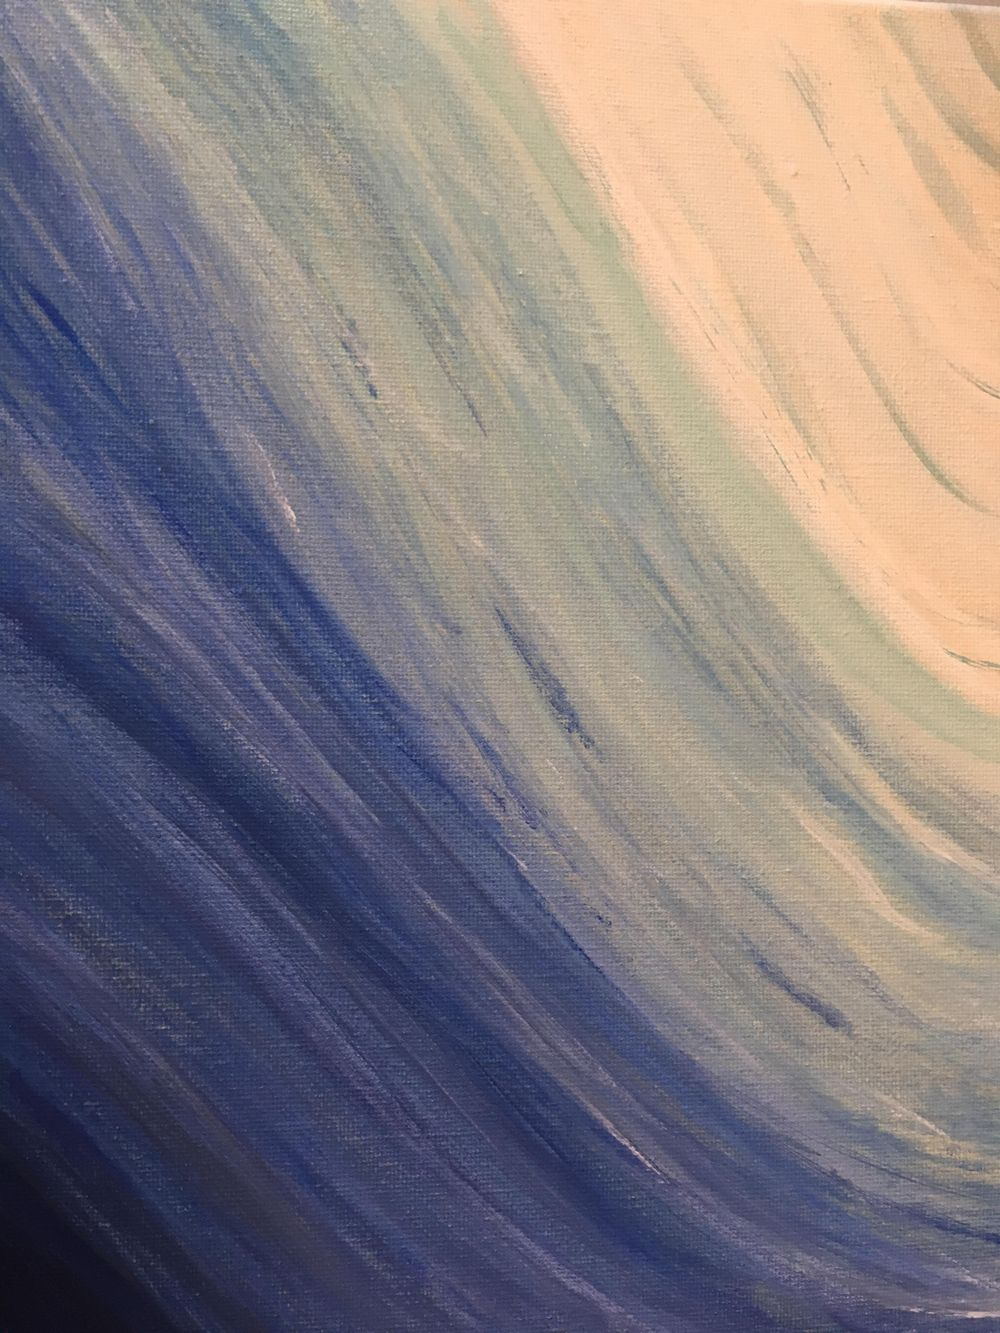 Abstracts in Blue - image 2 - student project